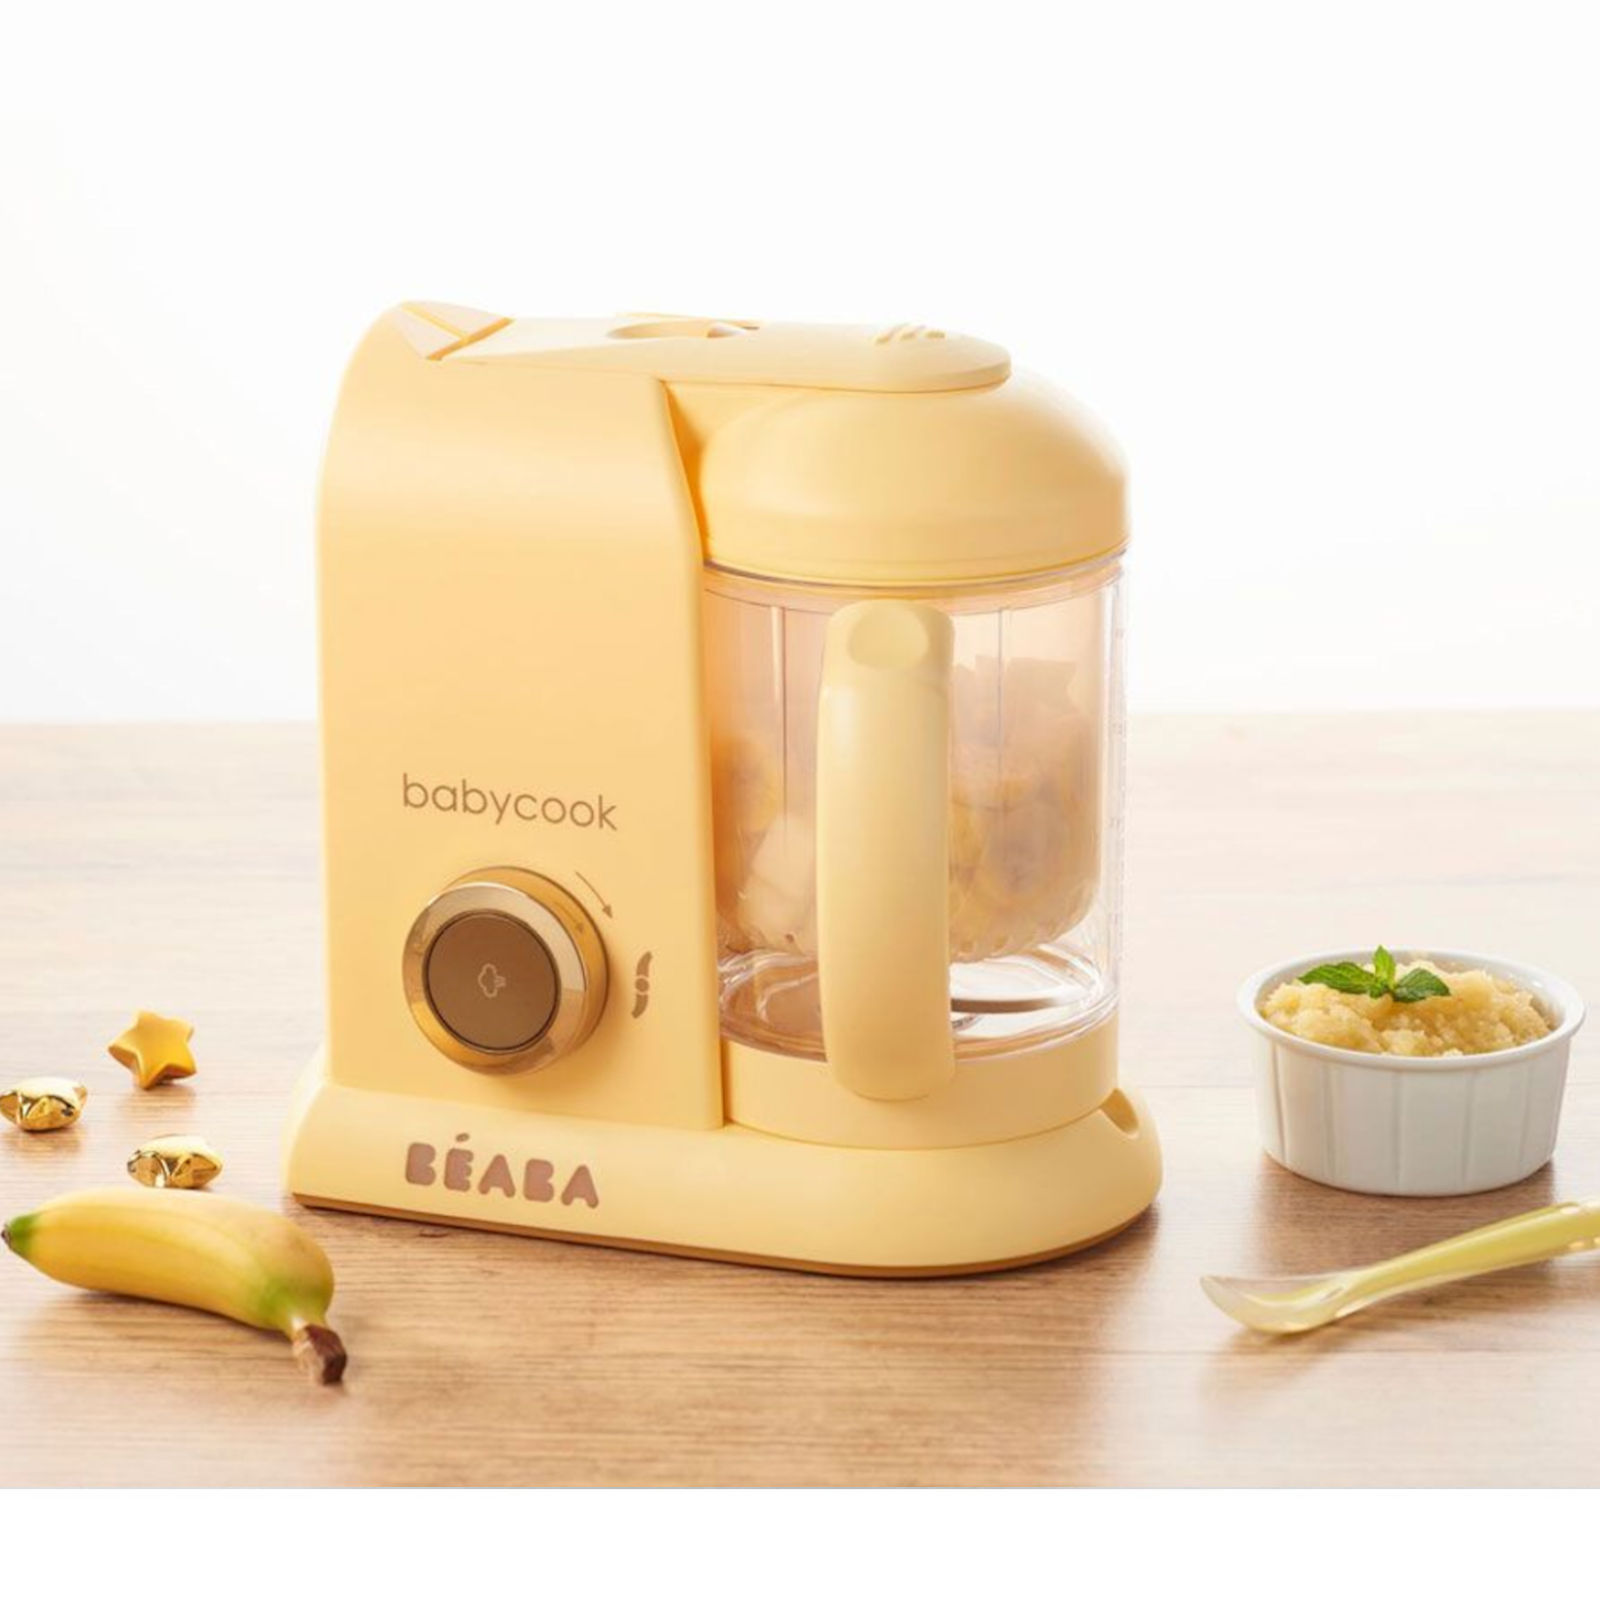 Beaba Babycook Solo 4-in-1 Limited Edition Baby Food Maker & Food Processor - Vanilla Yellow